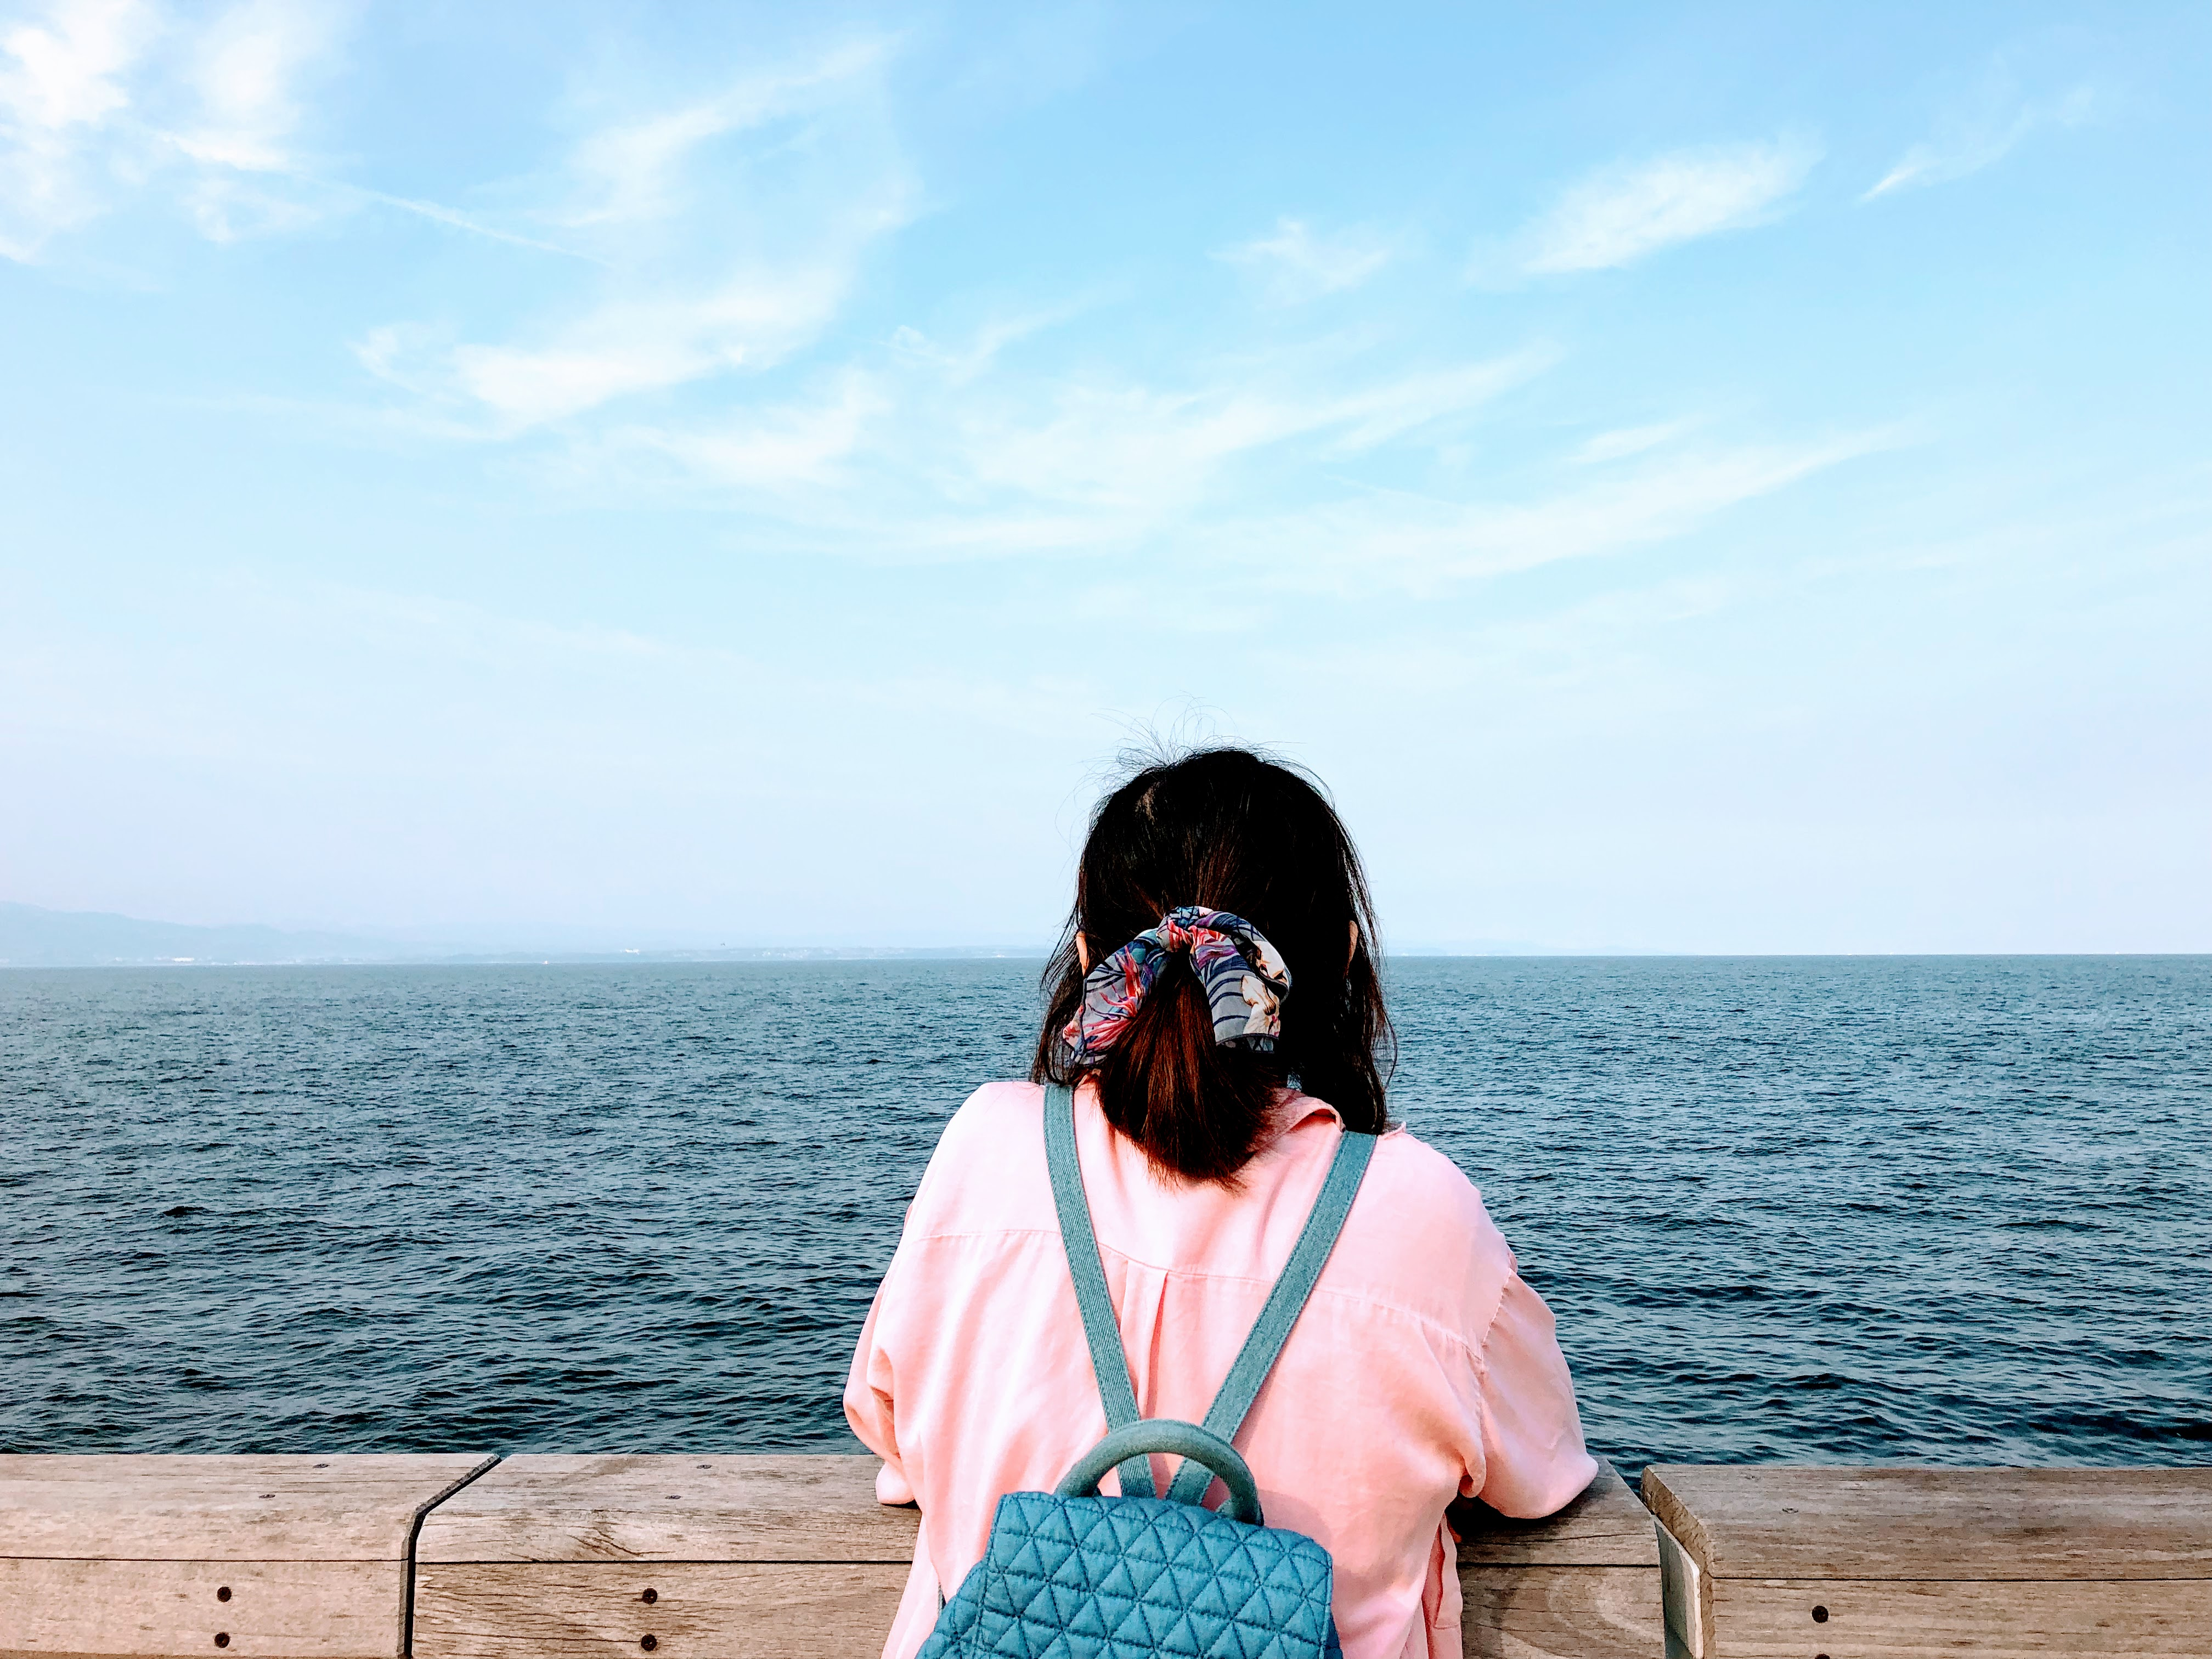 woman in pink shirt sitting on brown wooden bench looking at the sea during daytime